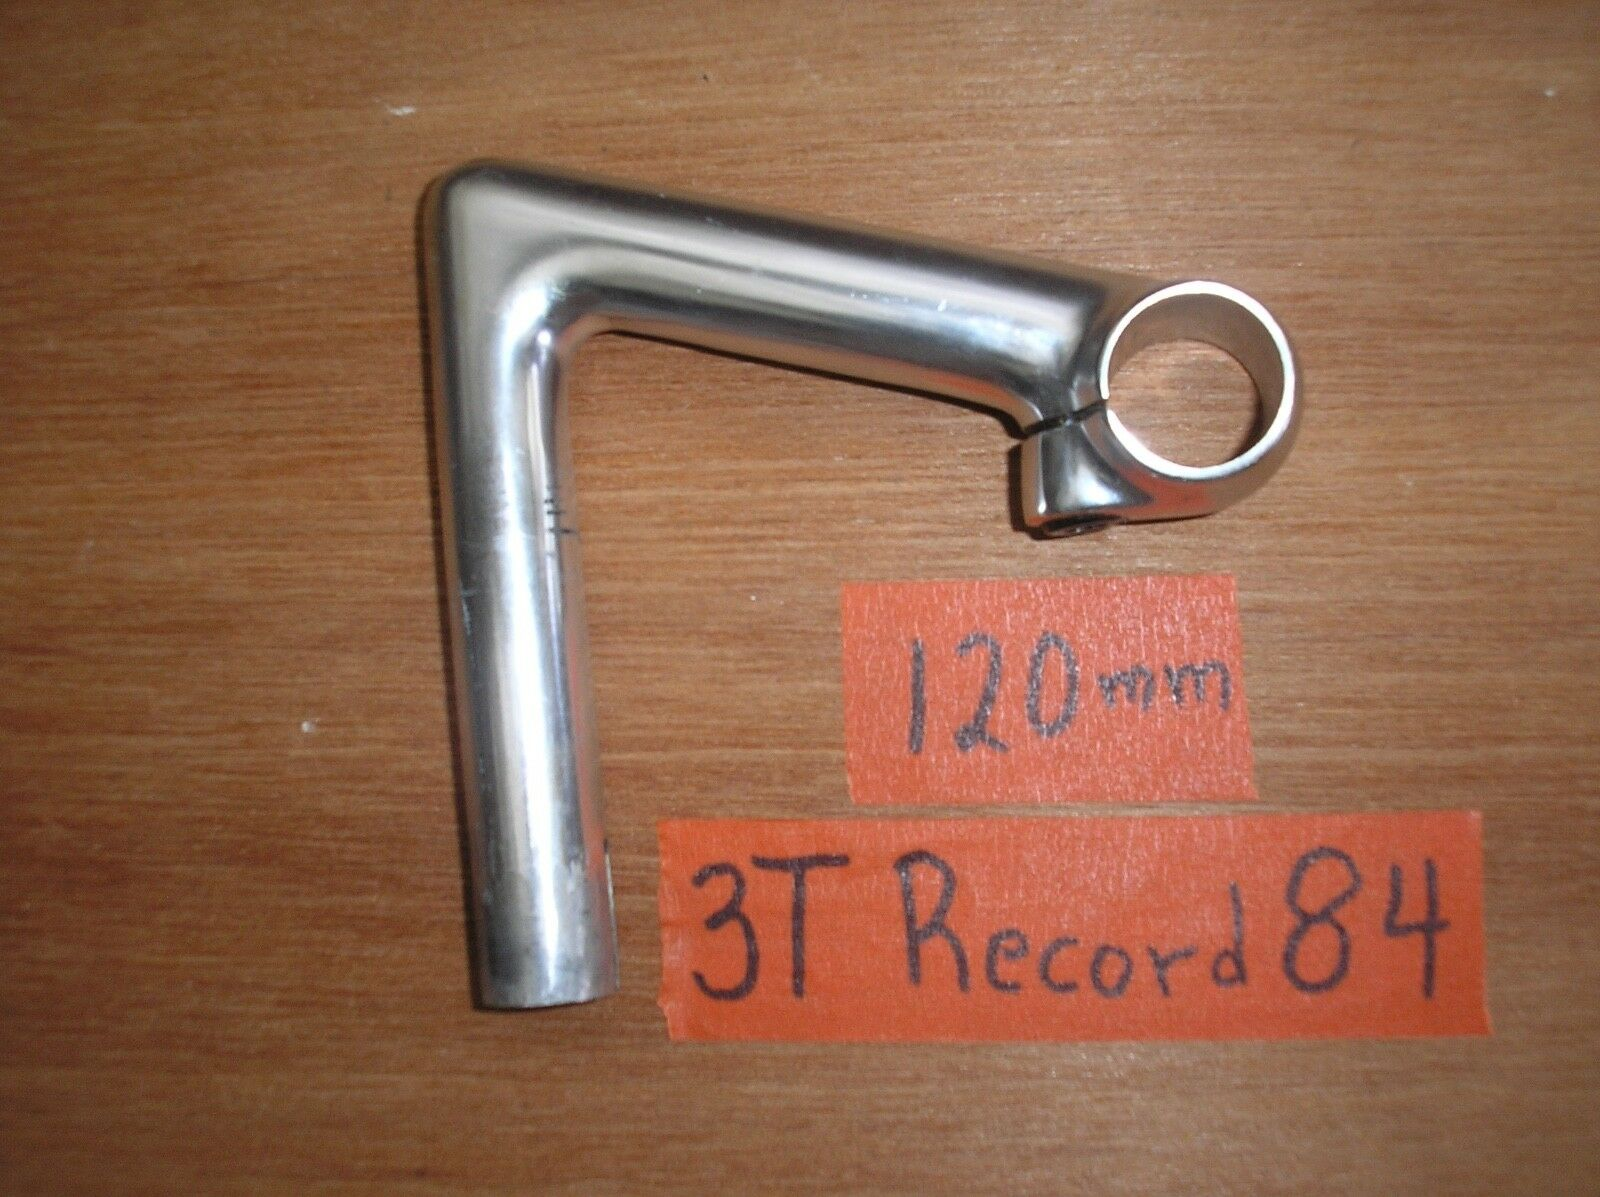 USED 3T Record 84 QUILL ROAD STEM 120mm 26.0mm 3TTT CAMPAGNOLO VINTAGE ROAD RACE